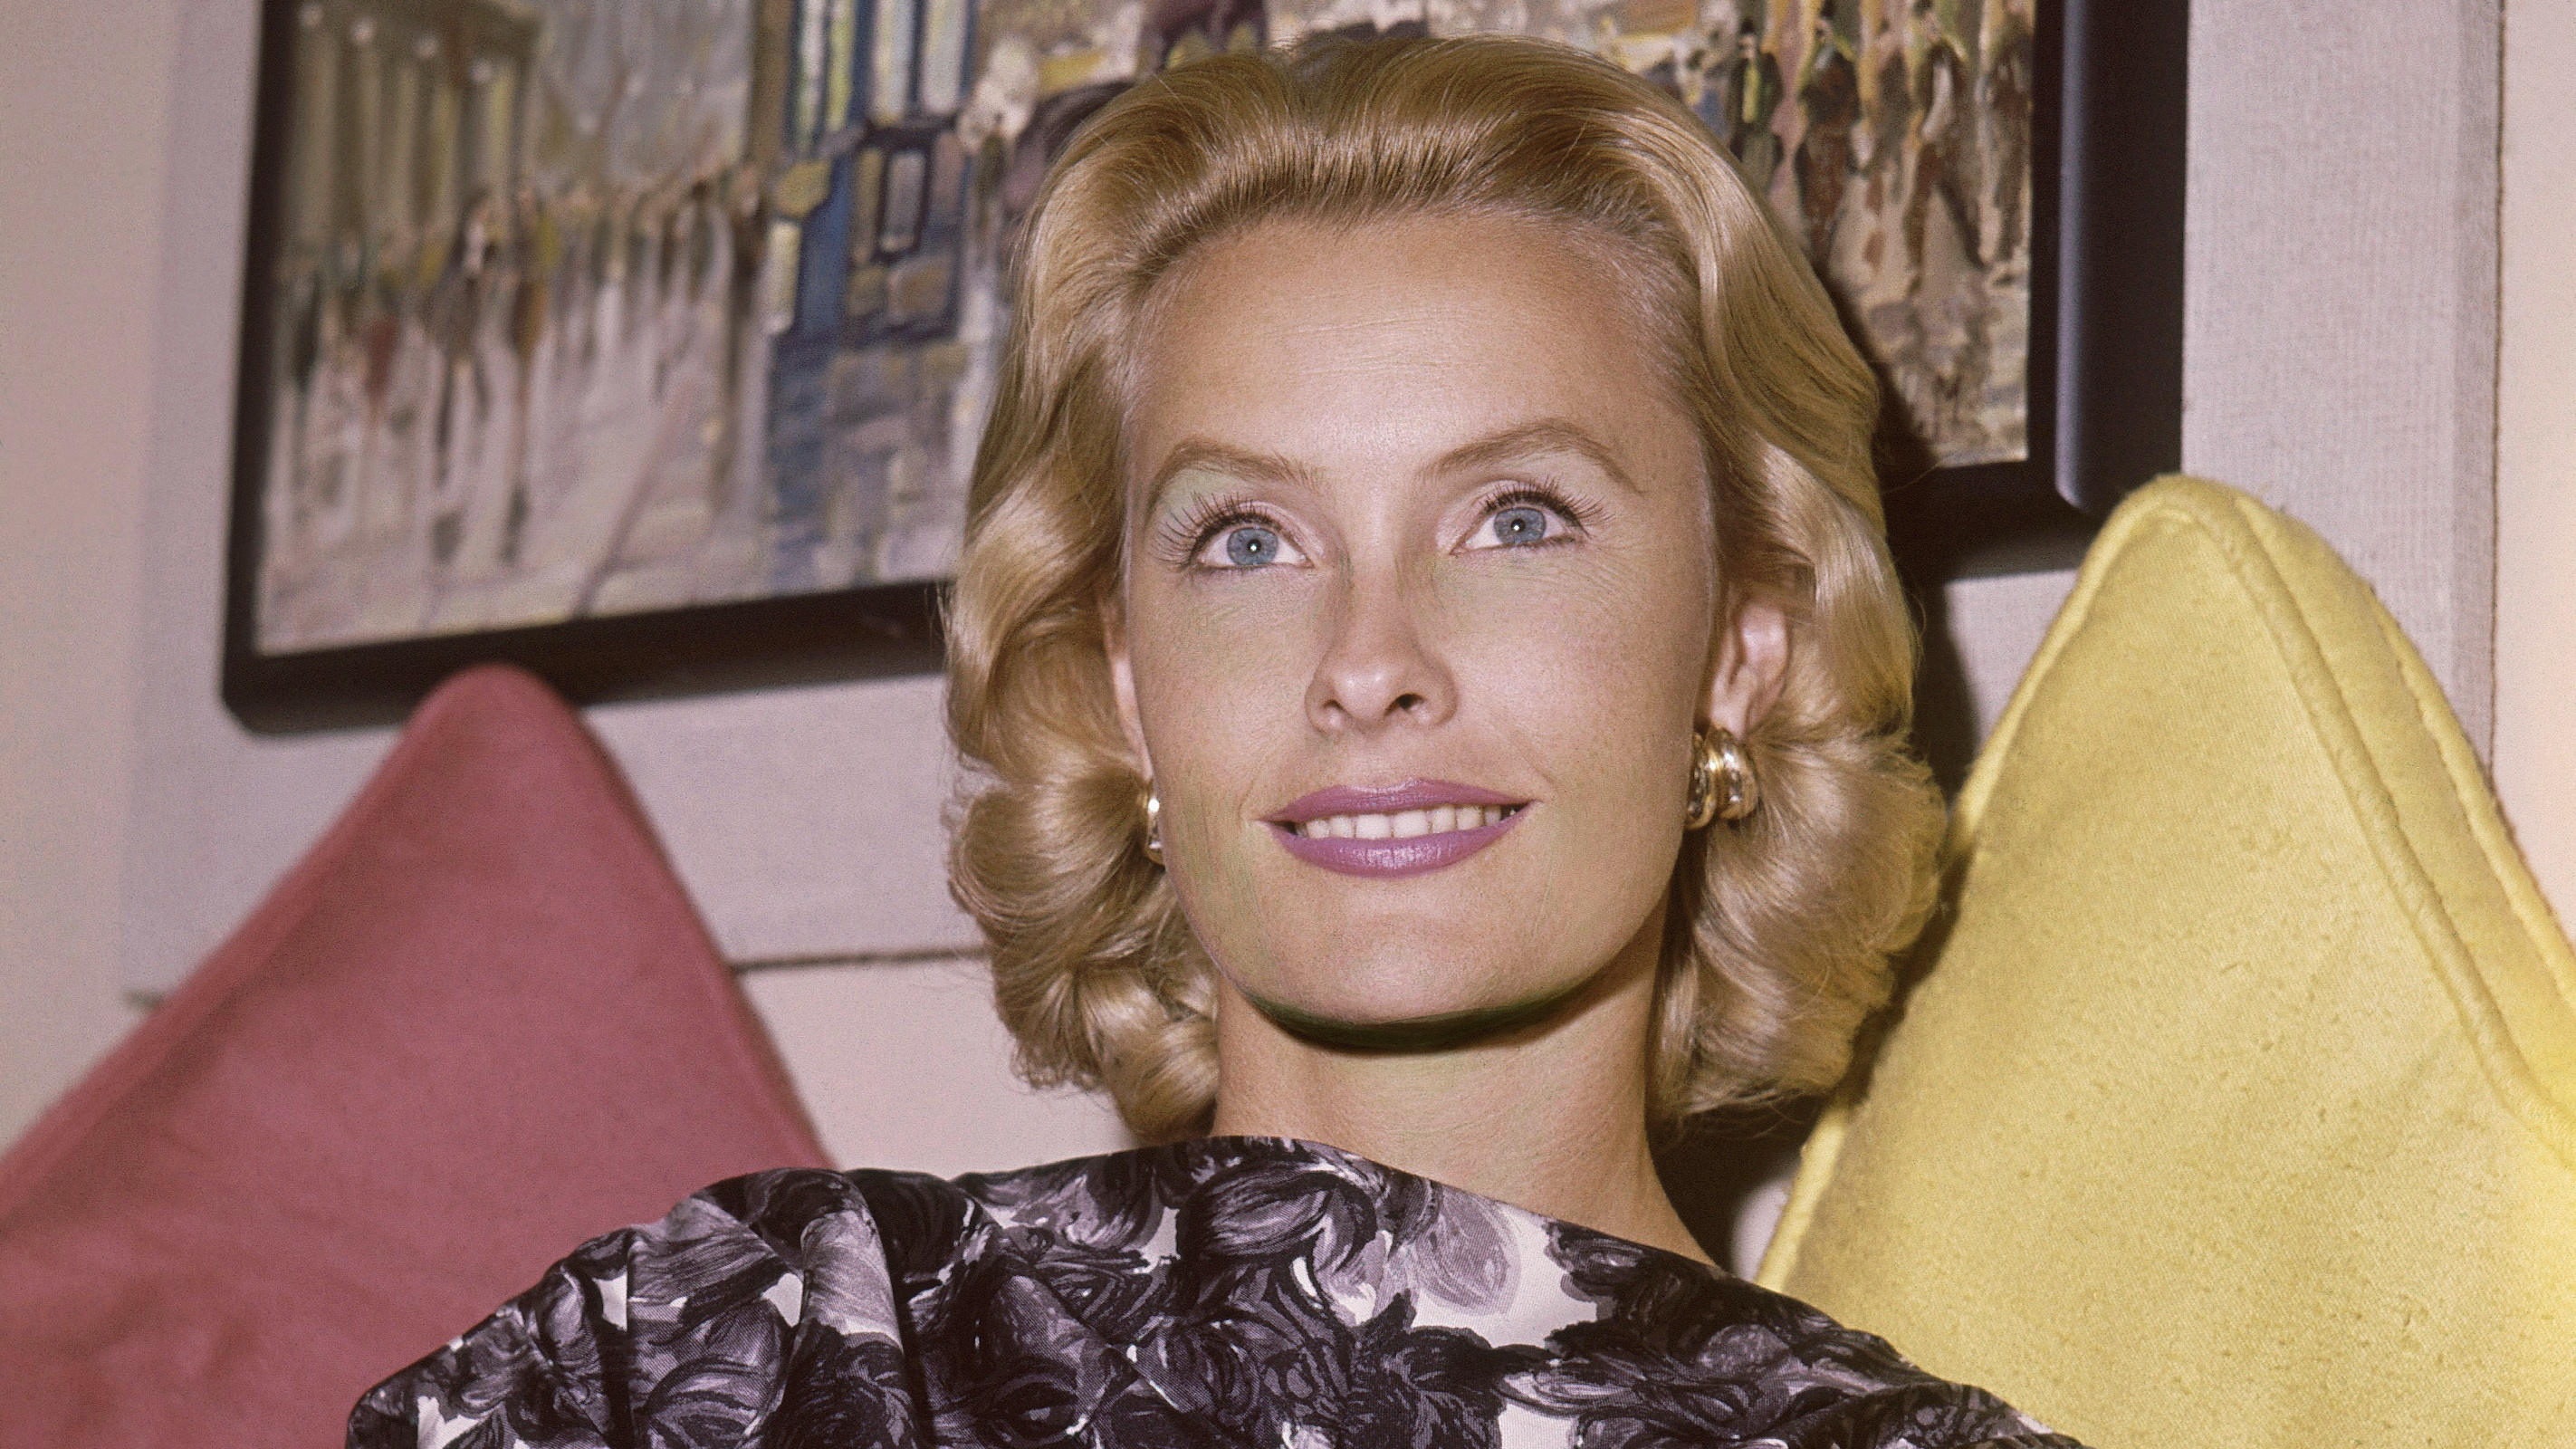 IMG DINA MERRILL, Actress, Heiress and Philanthropist